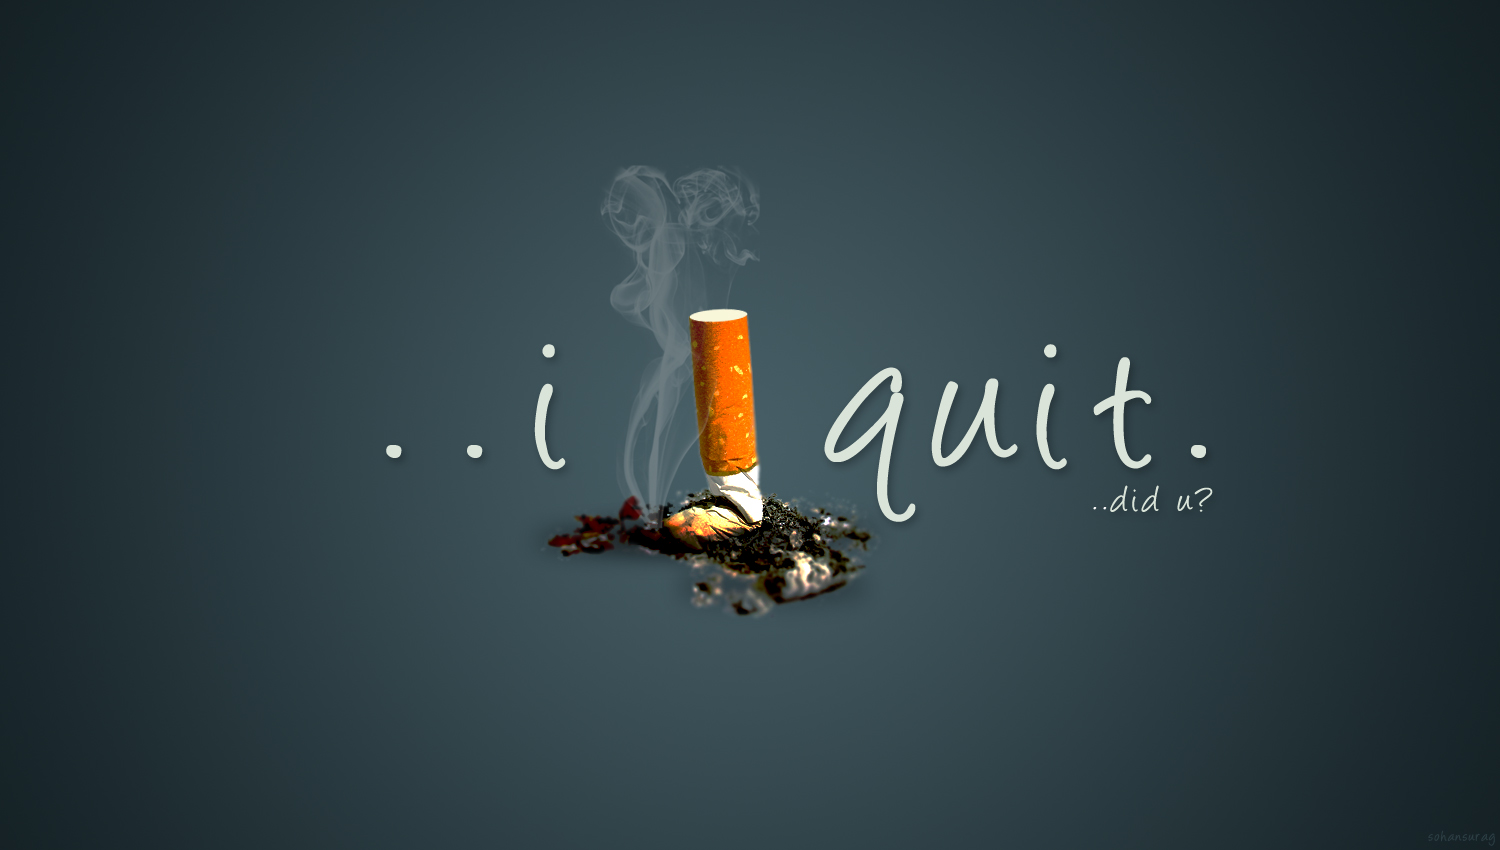 Quitting quotes and wallpapers quotesgram - Quit wallpaper ...